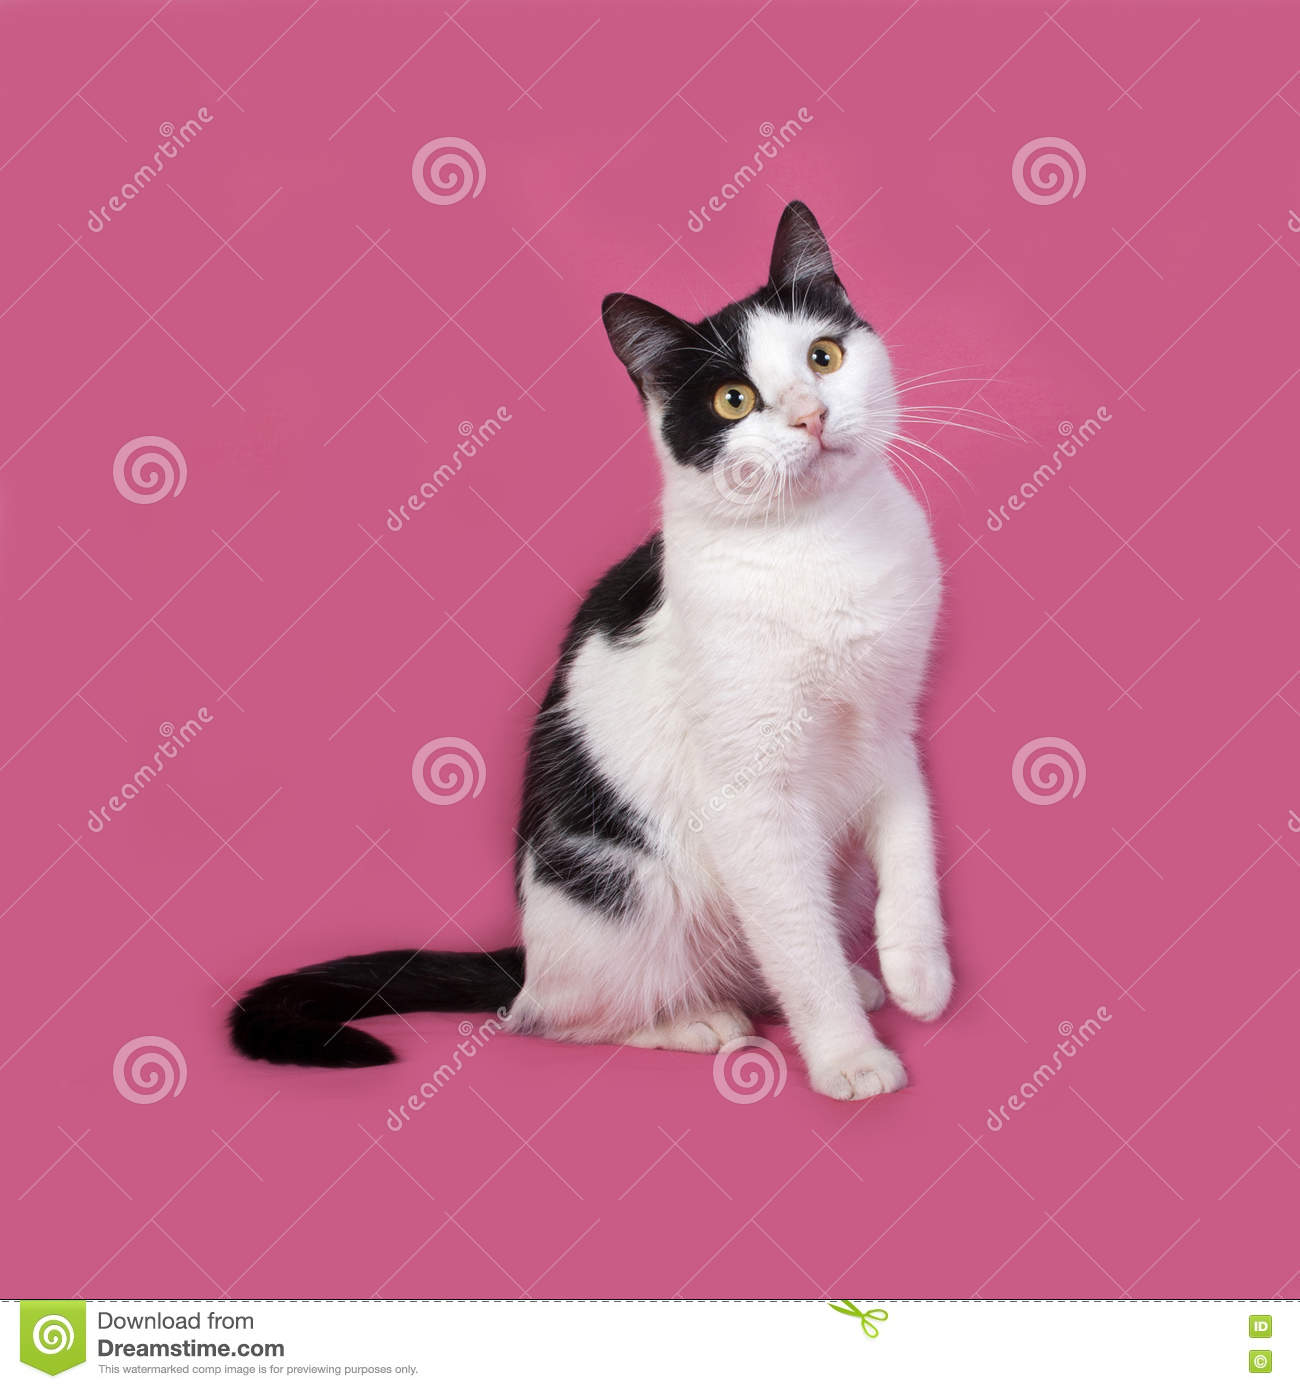 White And Black Spotted Cat Sitting On Pink Stock Image - Image of ...